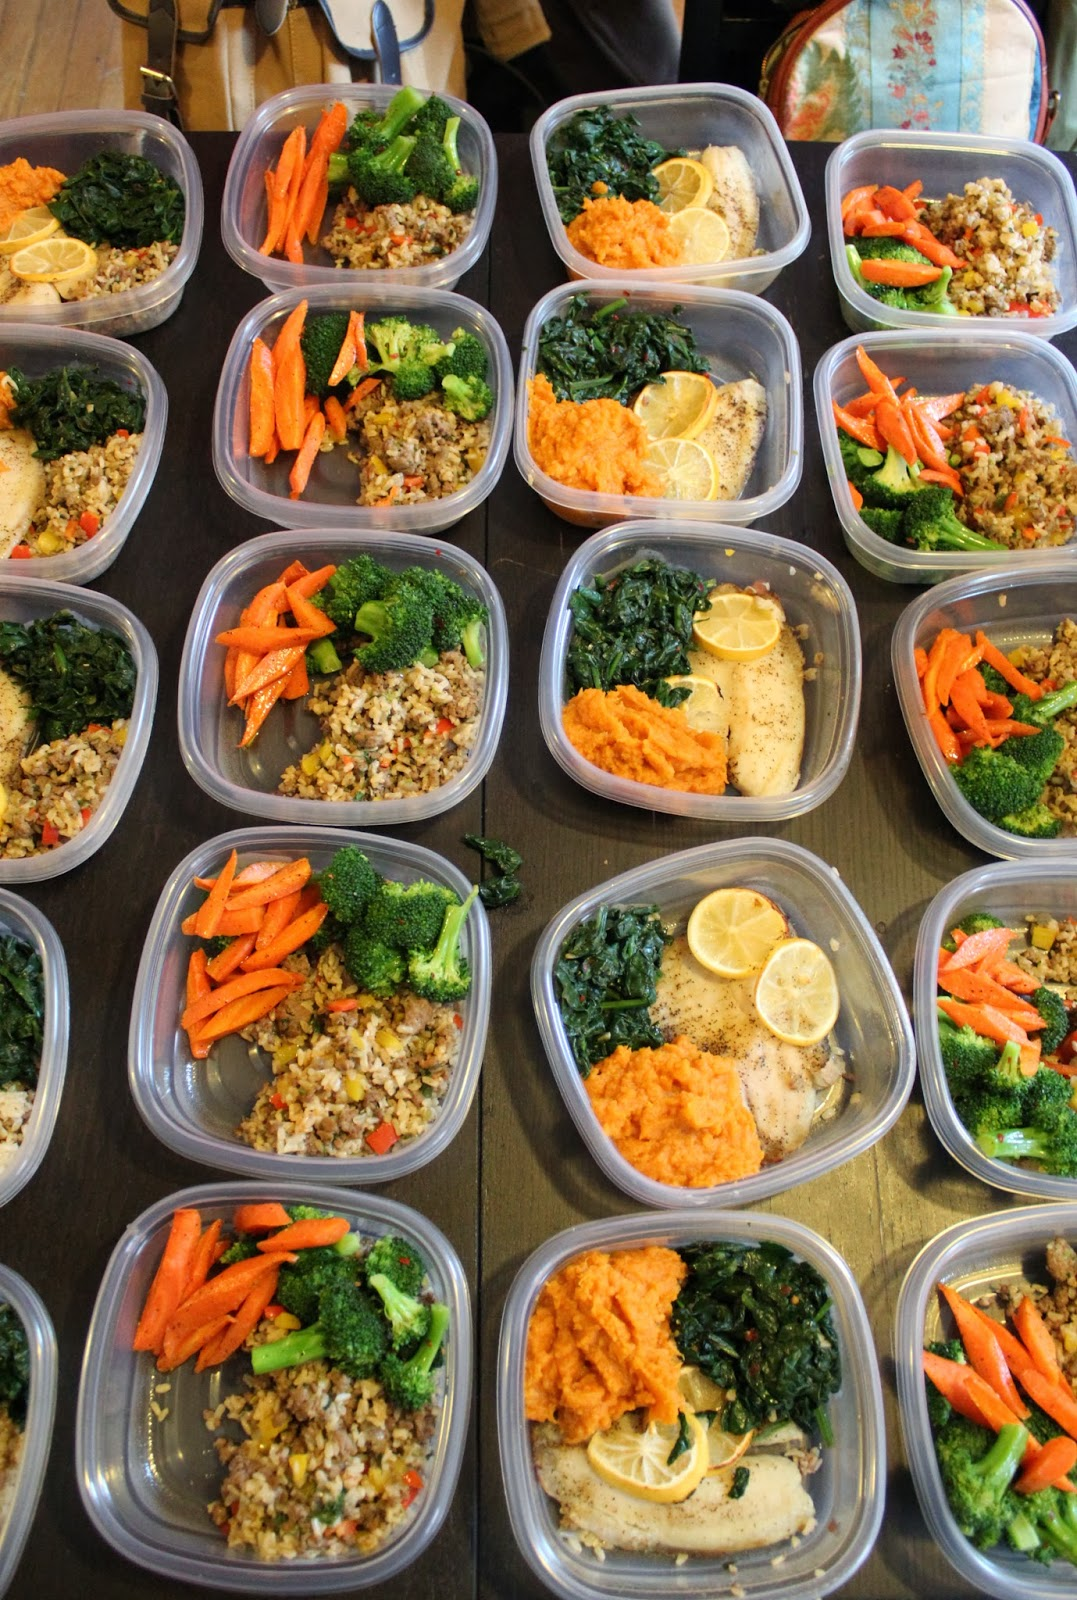 mealprep: expert tips for easy, healthy and affordable meals all